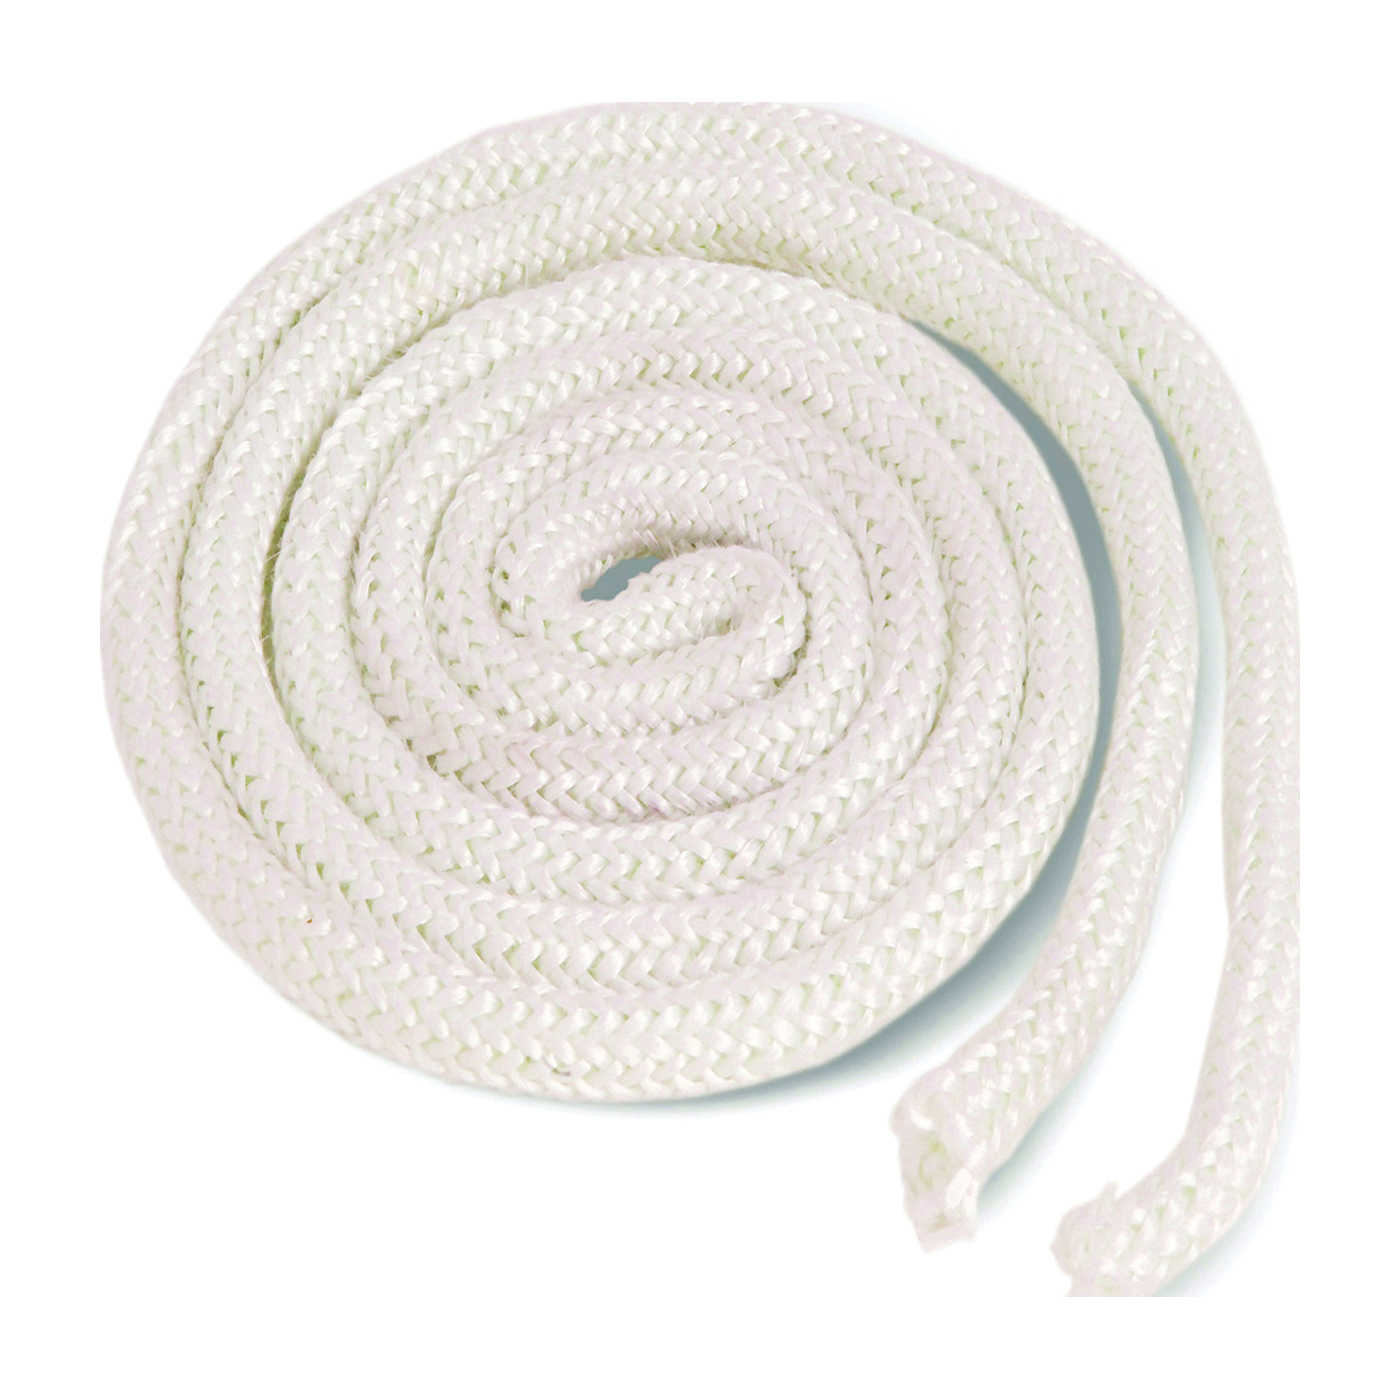 Picture of Imperial GA0157 Gasket Rope, 6 ft L, 3/4 in W, Fiberglass